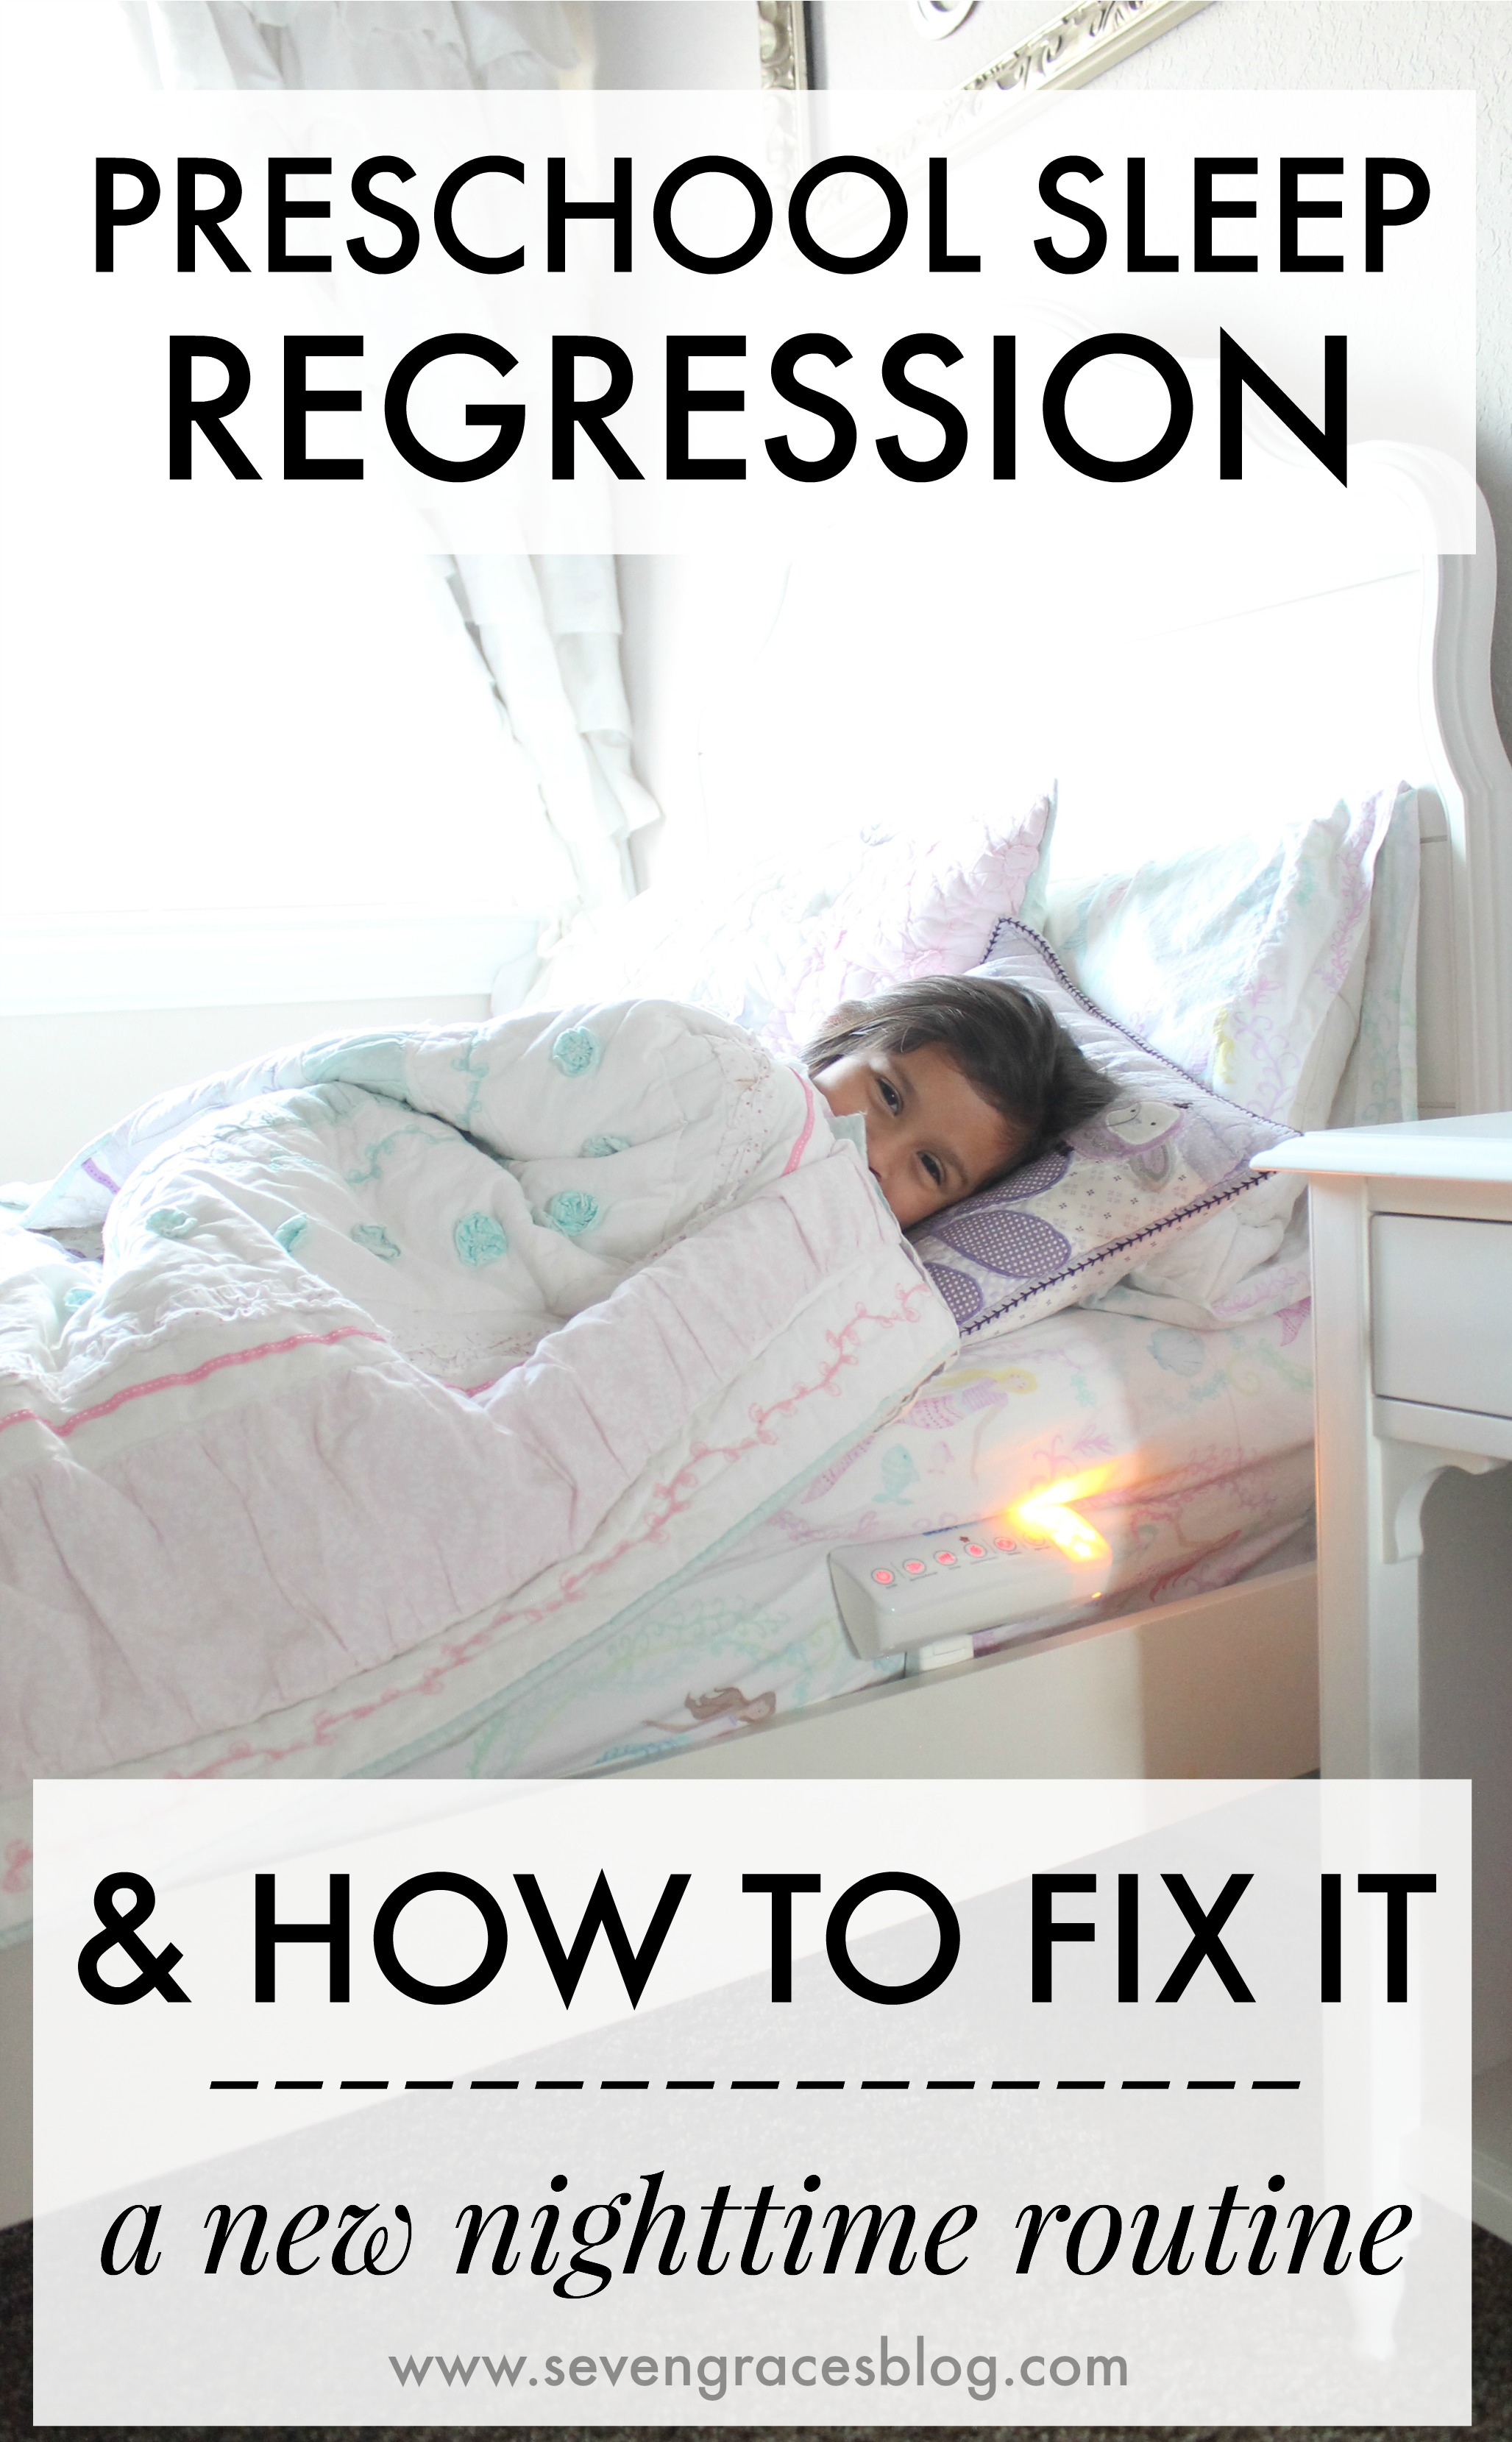 Preschool sleep regression and how to fix it (including our newfound love for the HaloSleep SnoozyPod). When your child has a newfound fear, a new nighttime routine is necessary. Is your preschooler waking up at night or fighting bedtime? Read all about our experience with sleep regression and the tips I've learned on how to fix it. #halosleep #ad